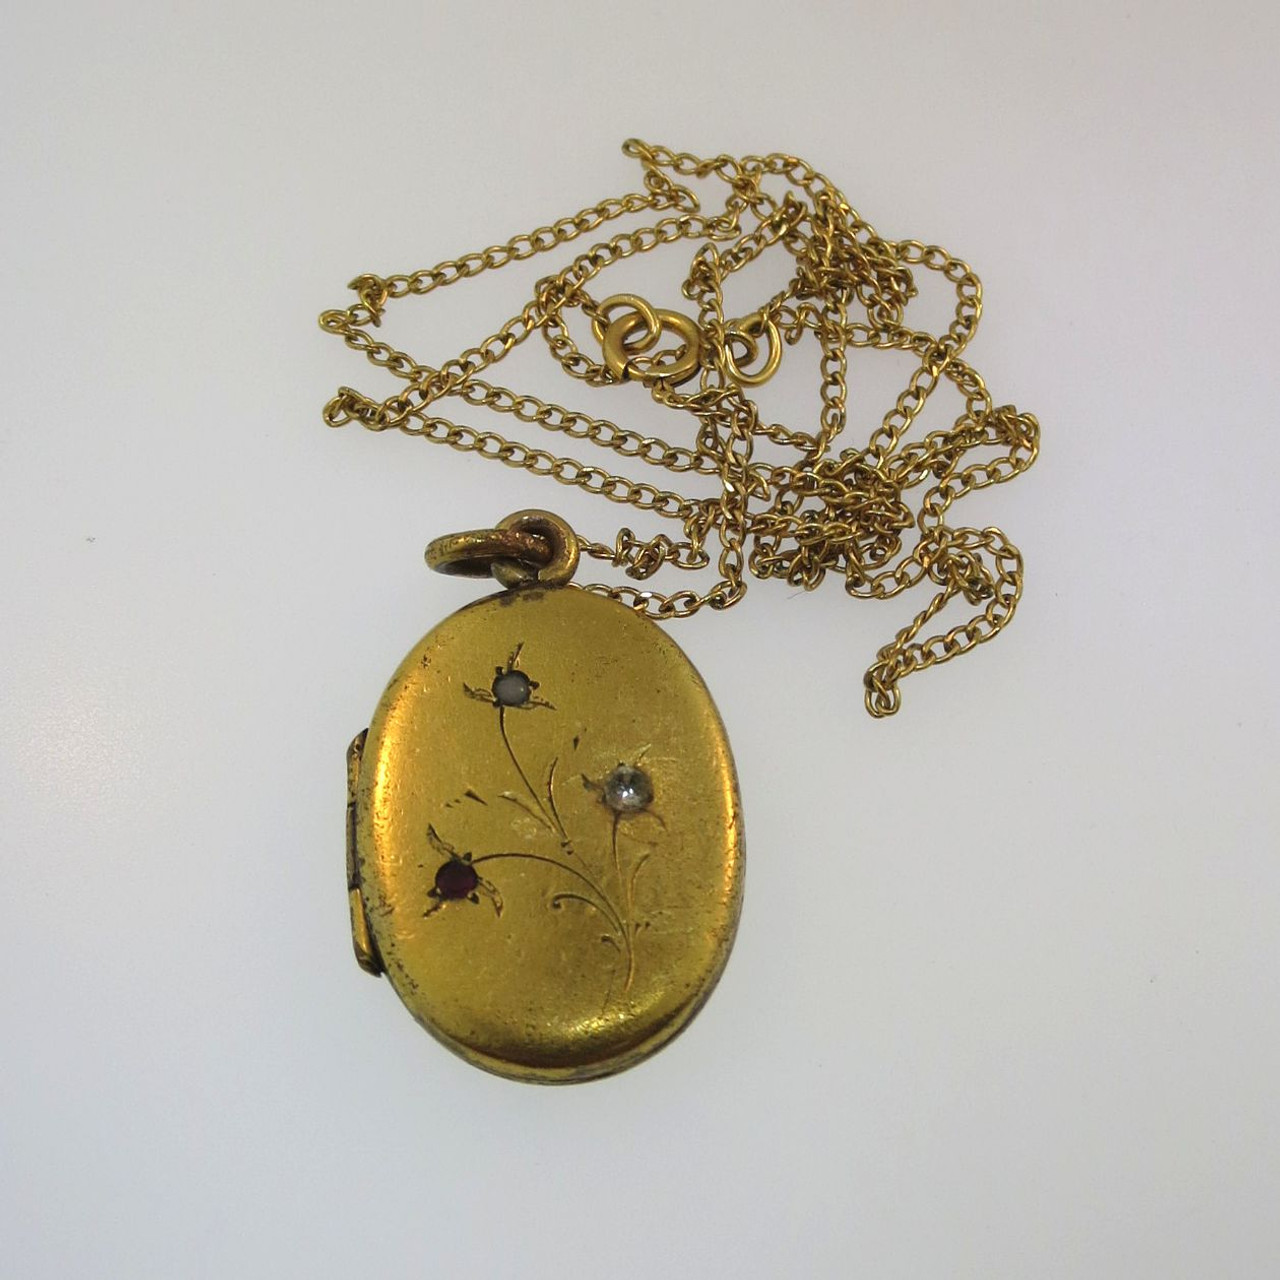 b4e15f8d4fad0 Vtg Gold Tone Unsigned Oval Locket with Photo on 12k Gold Filled ...